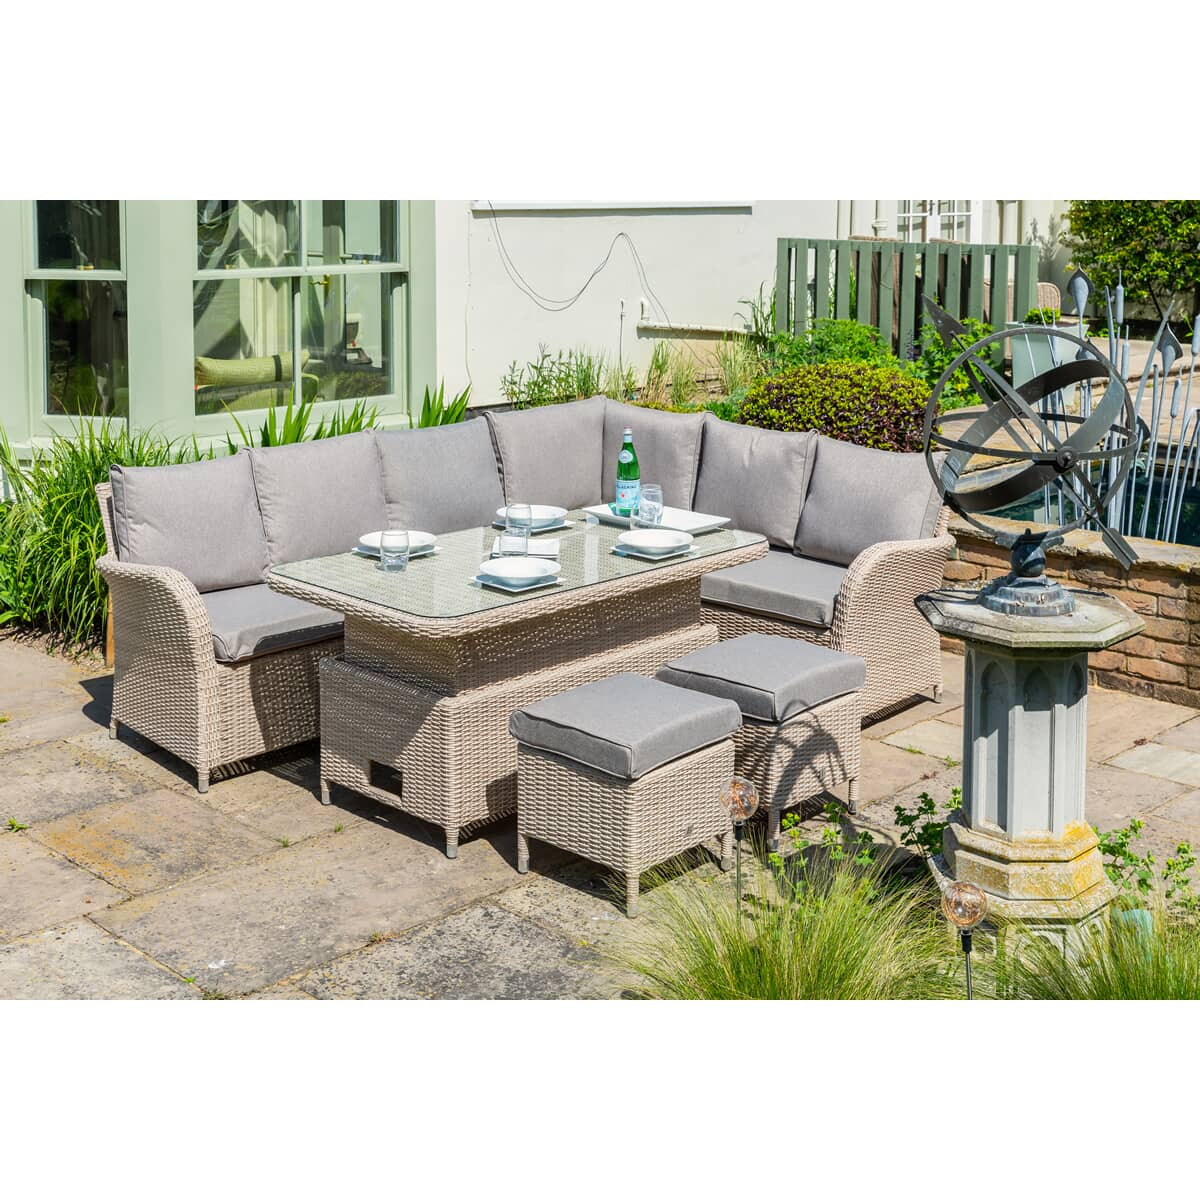 1 X Lg Outdoor Monaco Left And Right Sofas 2 Footstools And Cushions Mnc10bdl